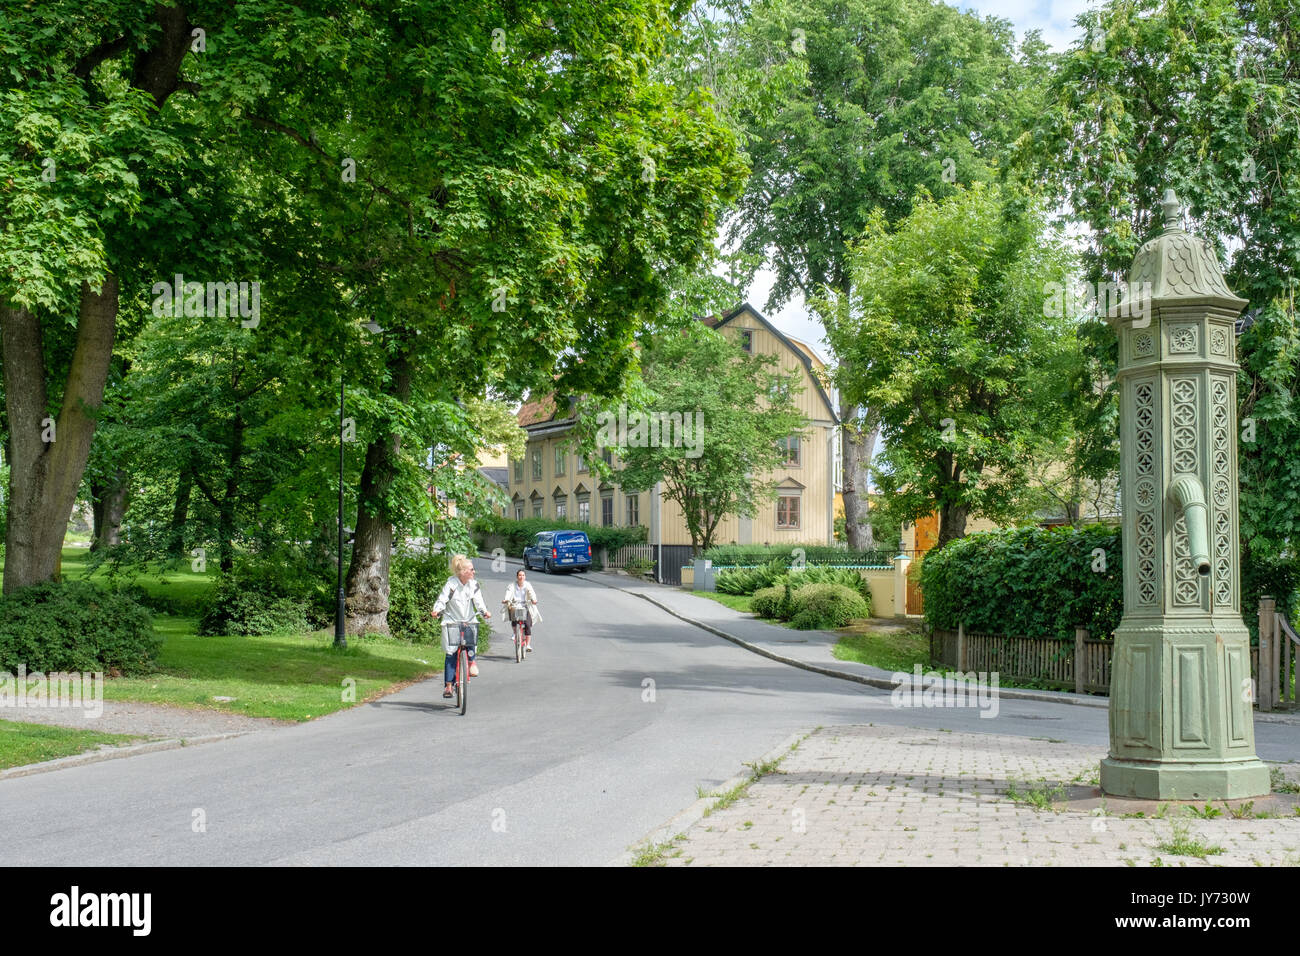 Bikers at Djurgarden  in Stockholm. Djurgarden is a recreational area with historical buildings, monuments, amusement park and open-air museum. - Stock Image